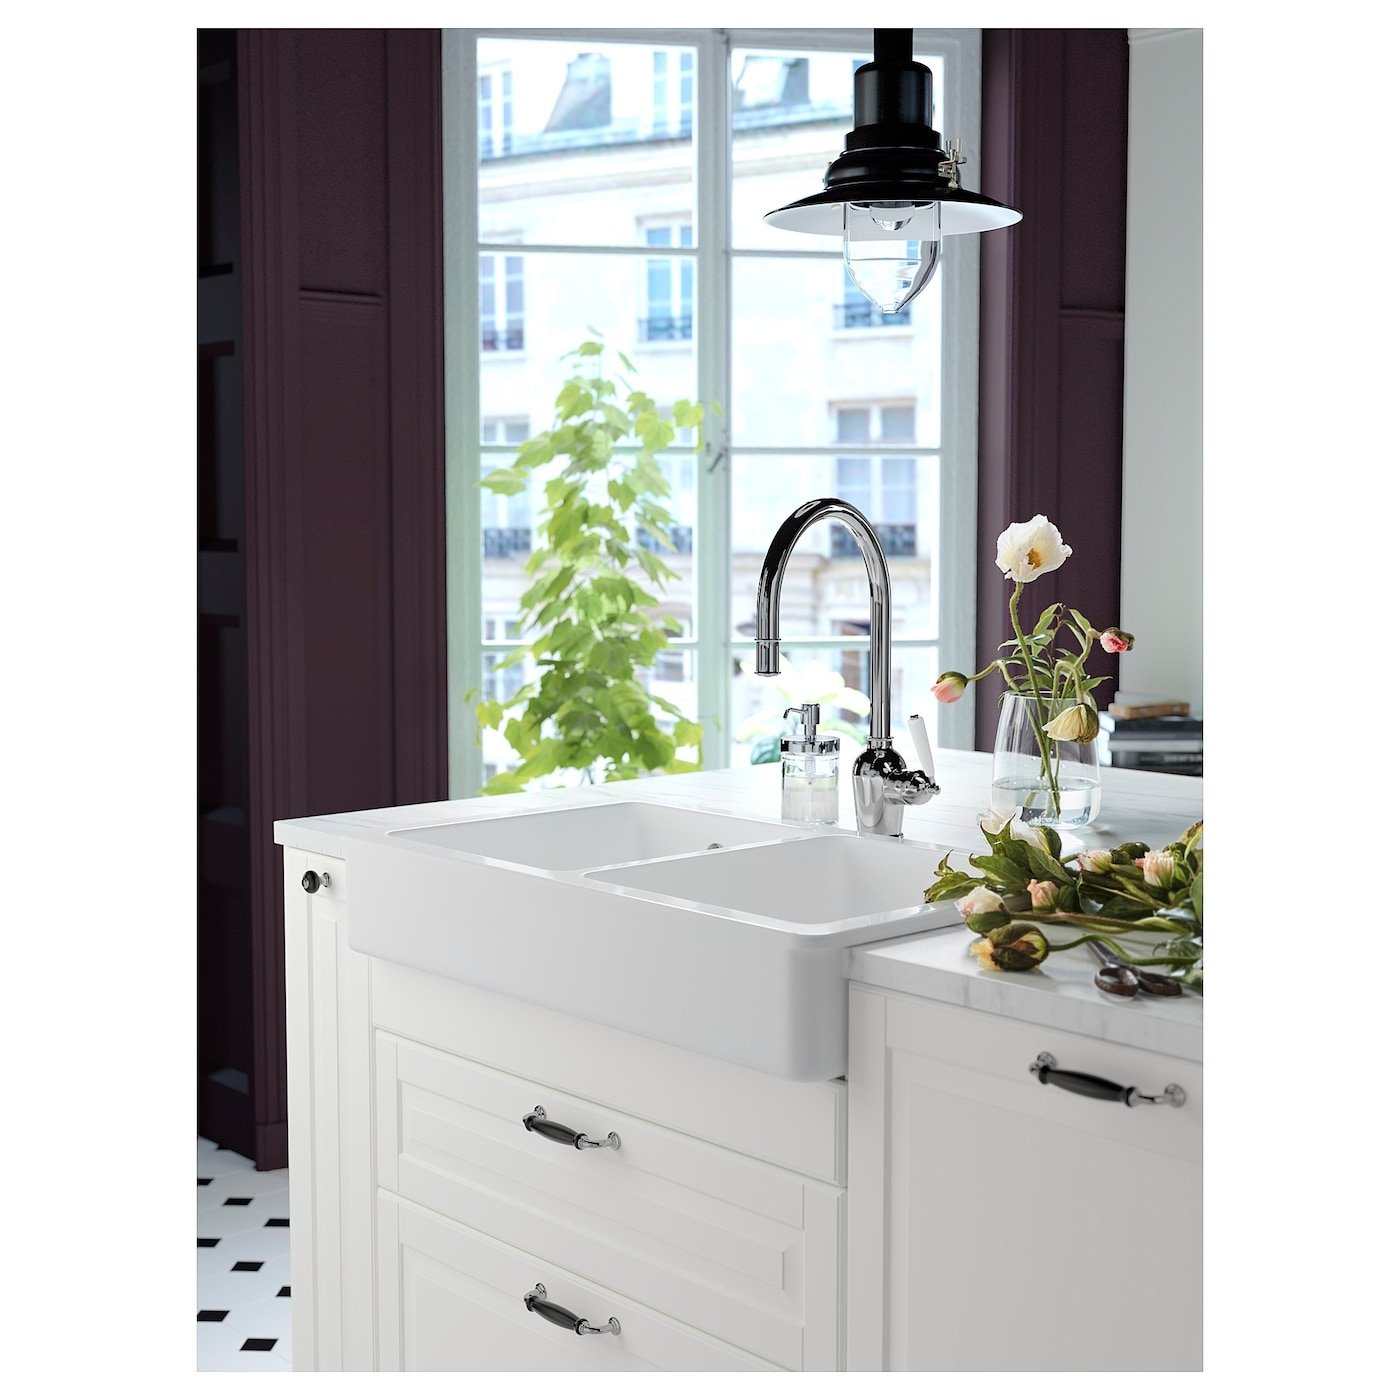 IKEA INSJÖN kitchen mixer tap w pull-out spout Rinsing dishes is easier with the pull-out spout.